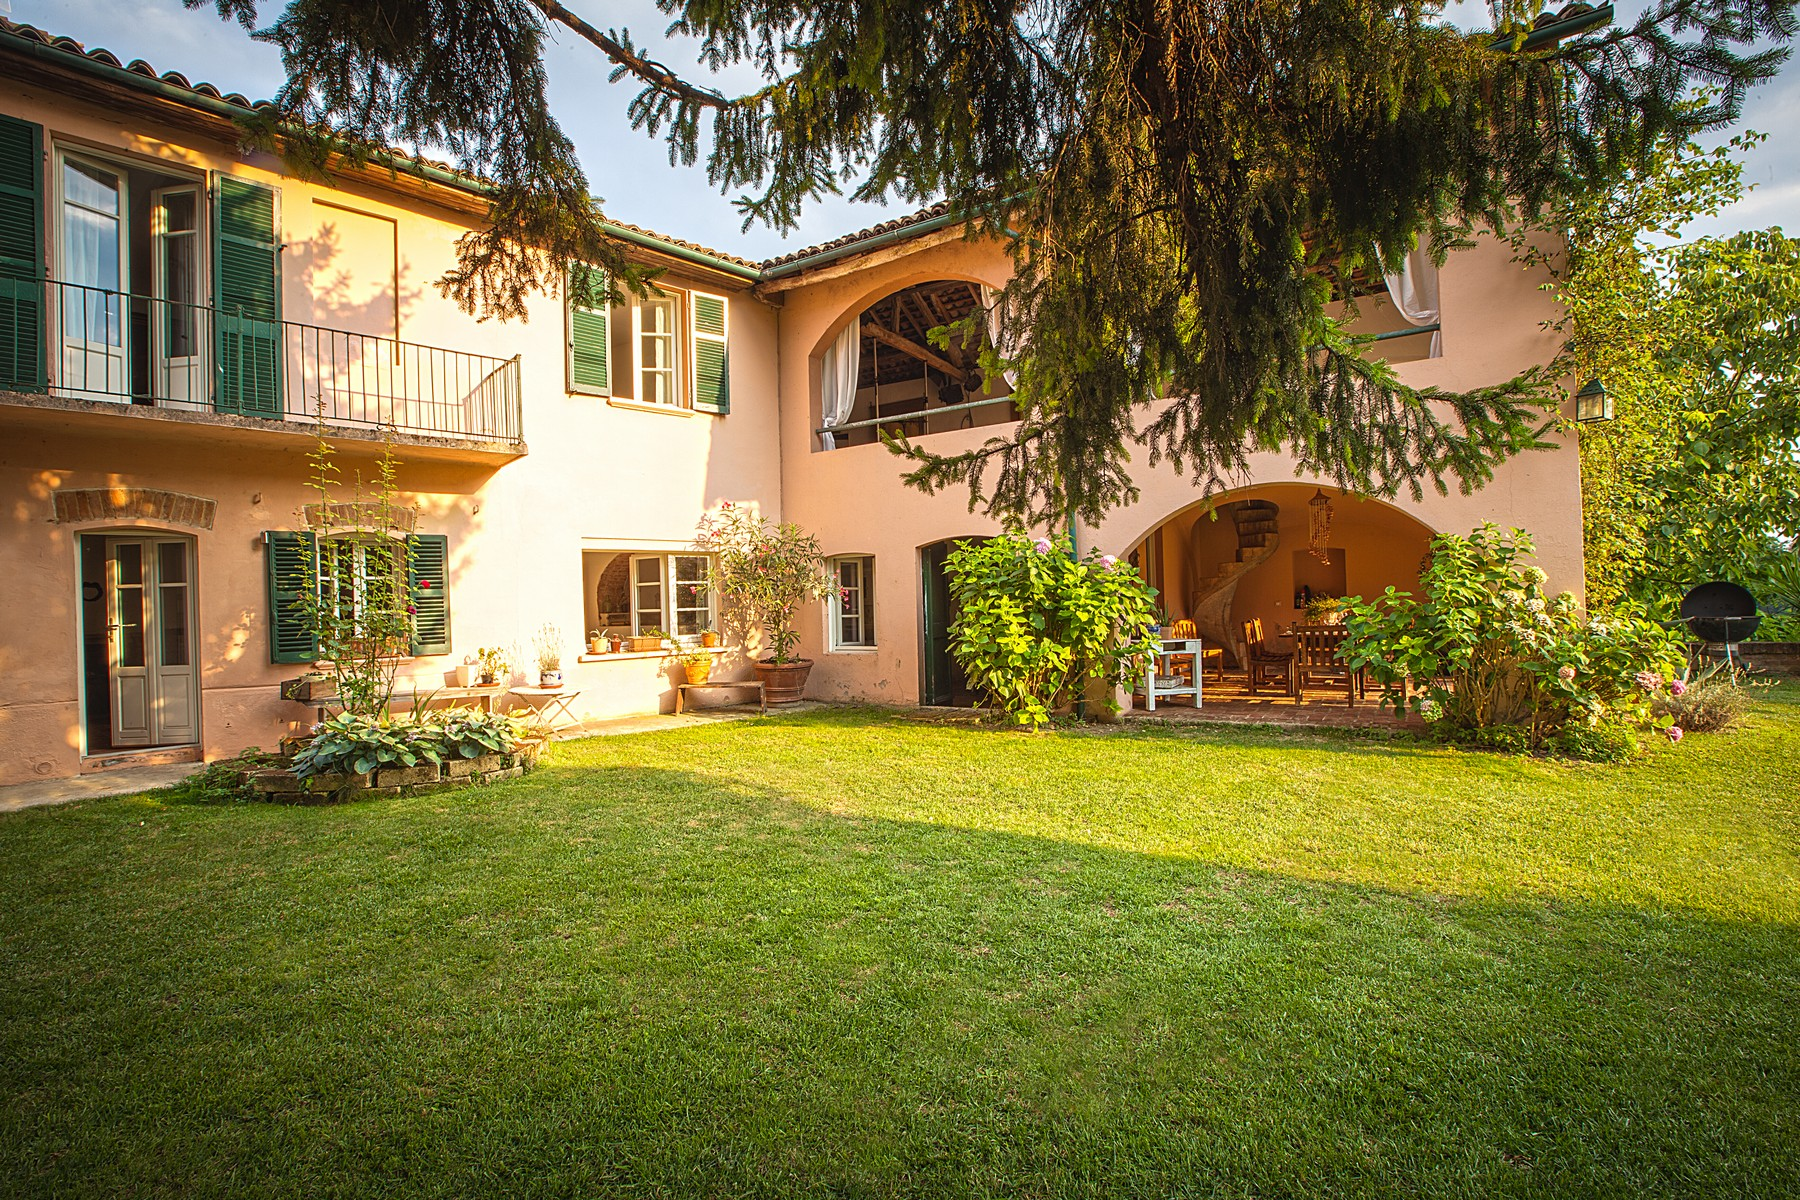 Additional photo for property listing at Charming property in Monferrato with outdoor pool Fubine Fubine, Alessandria 15043 Italy